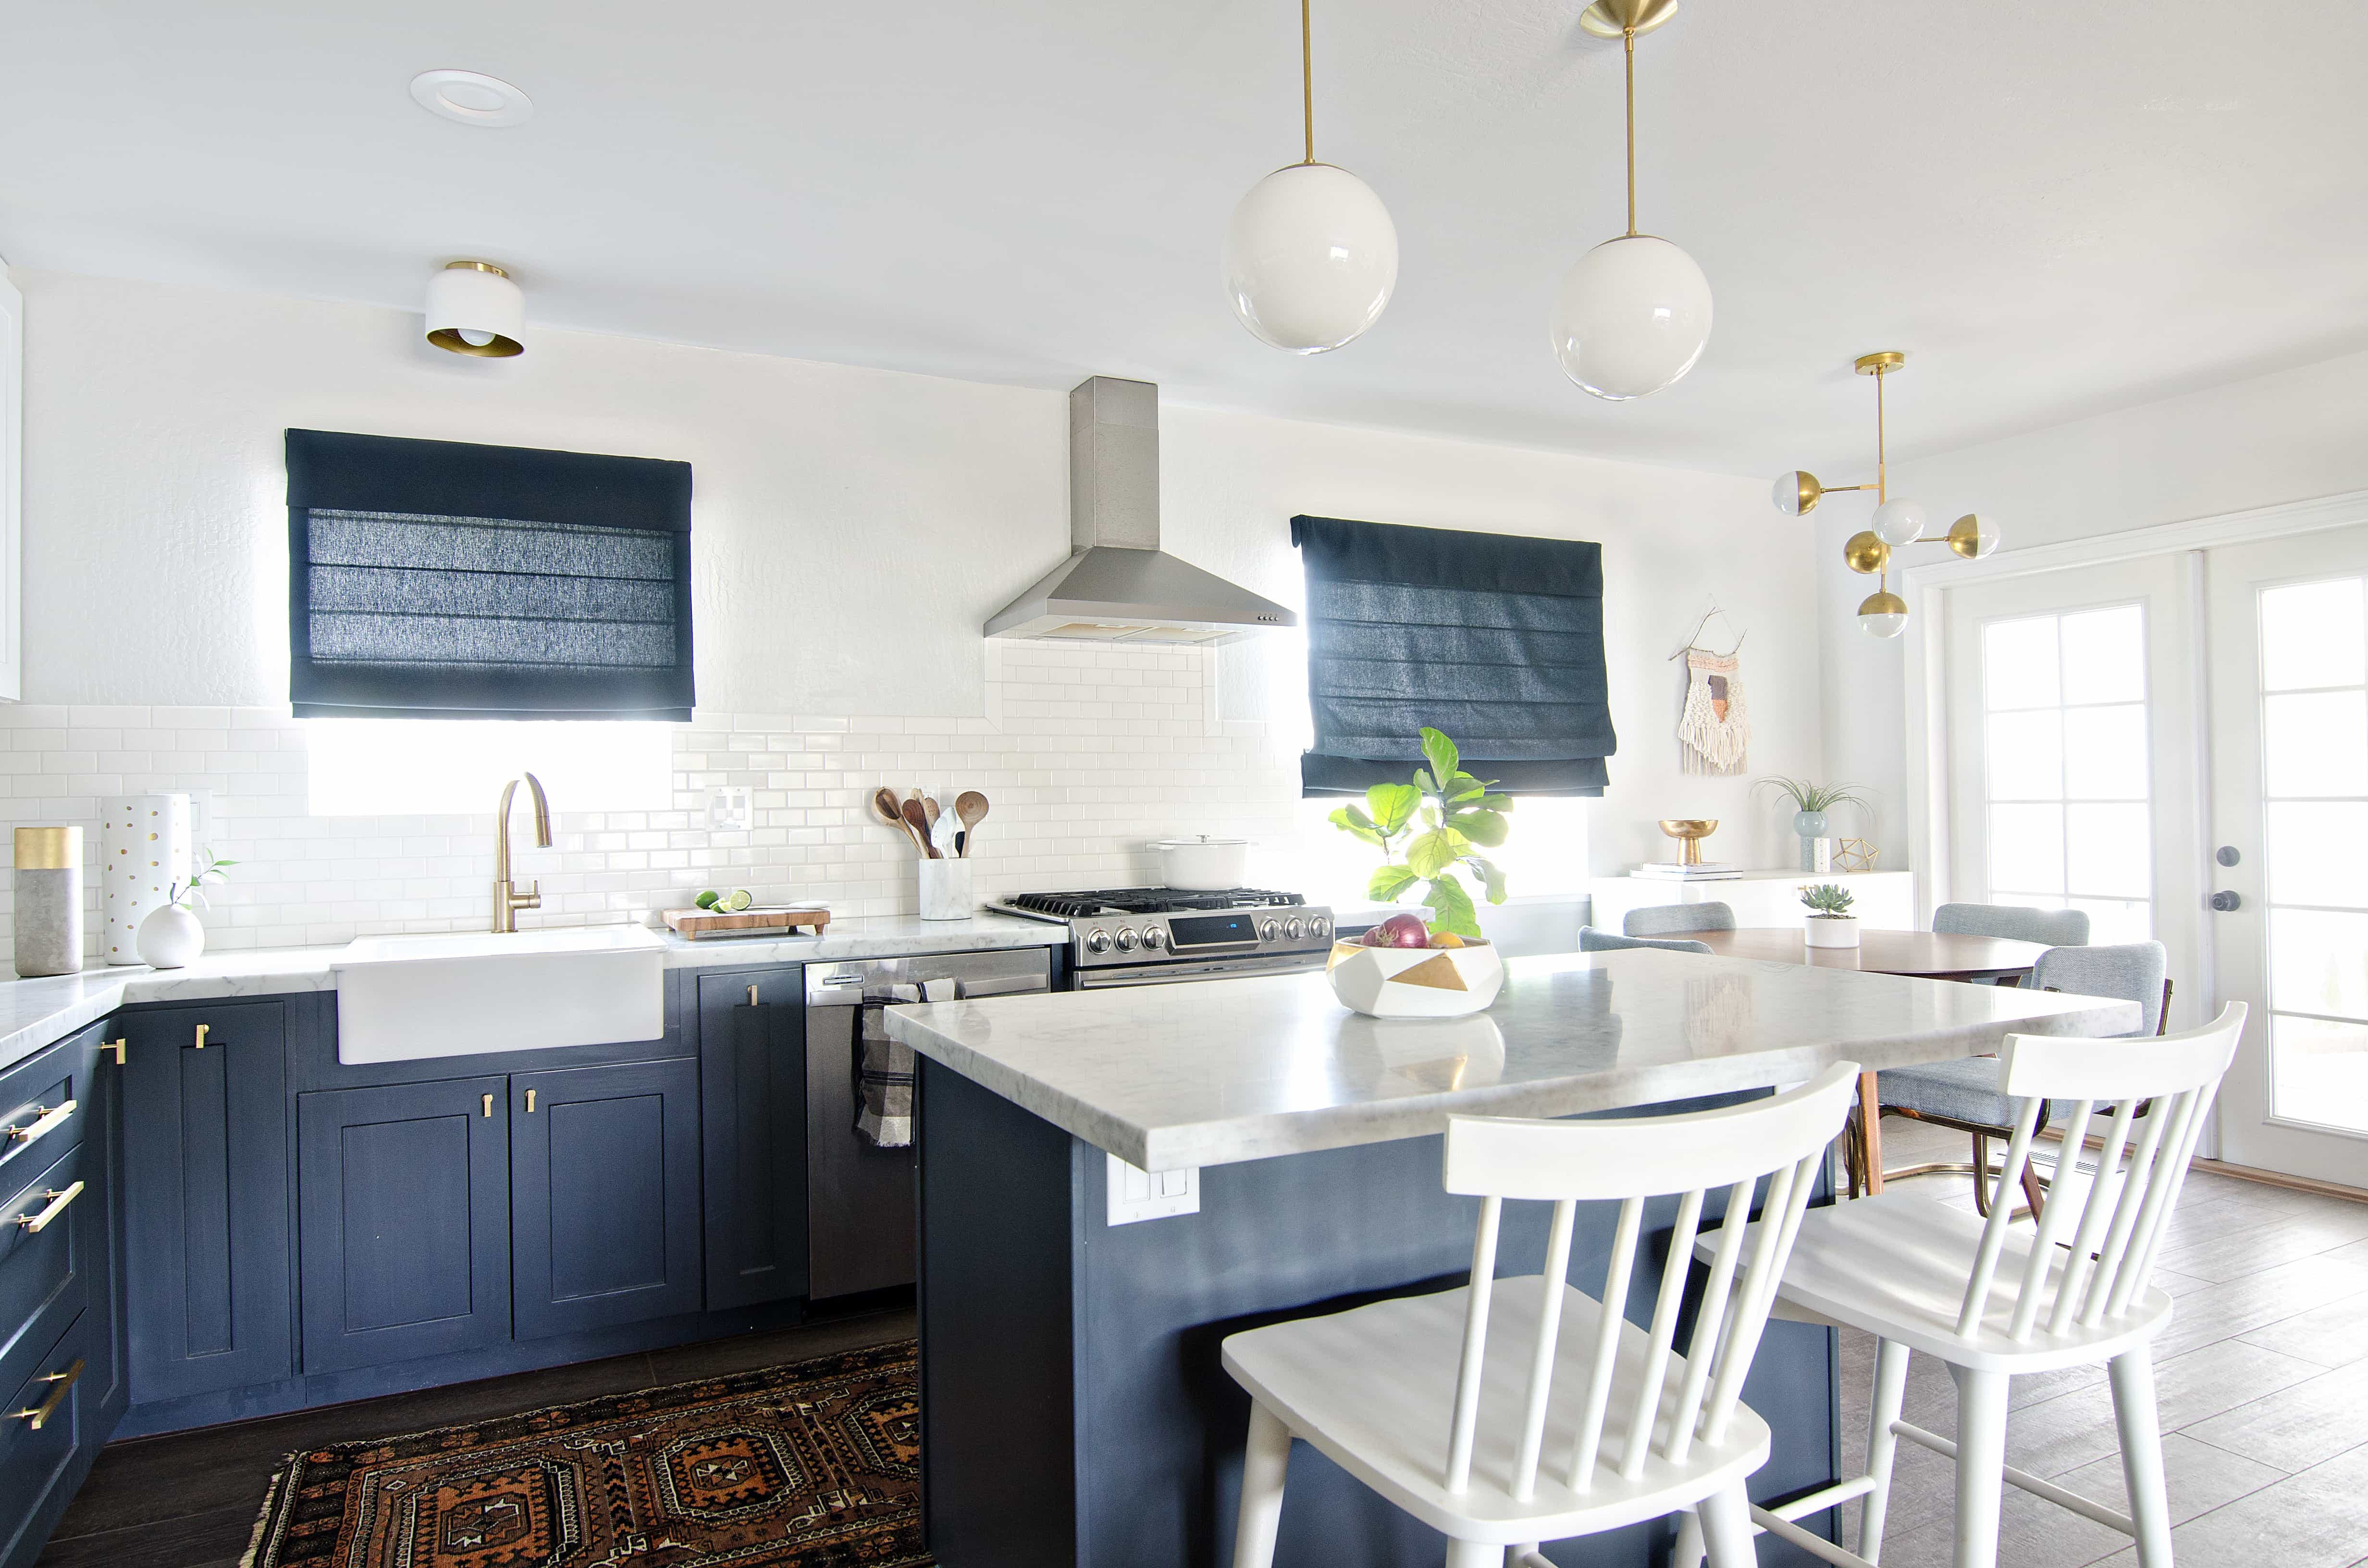 Bright kitchen with white walls and blue cabinets and blue roman shades.